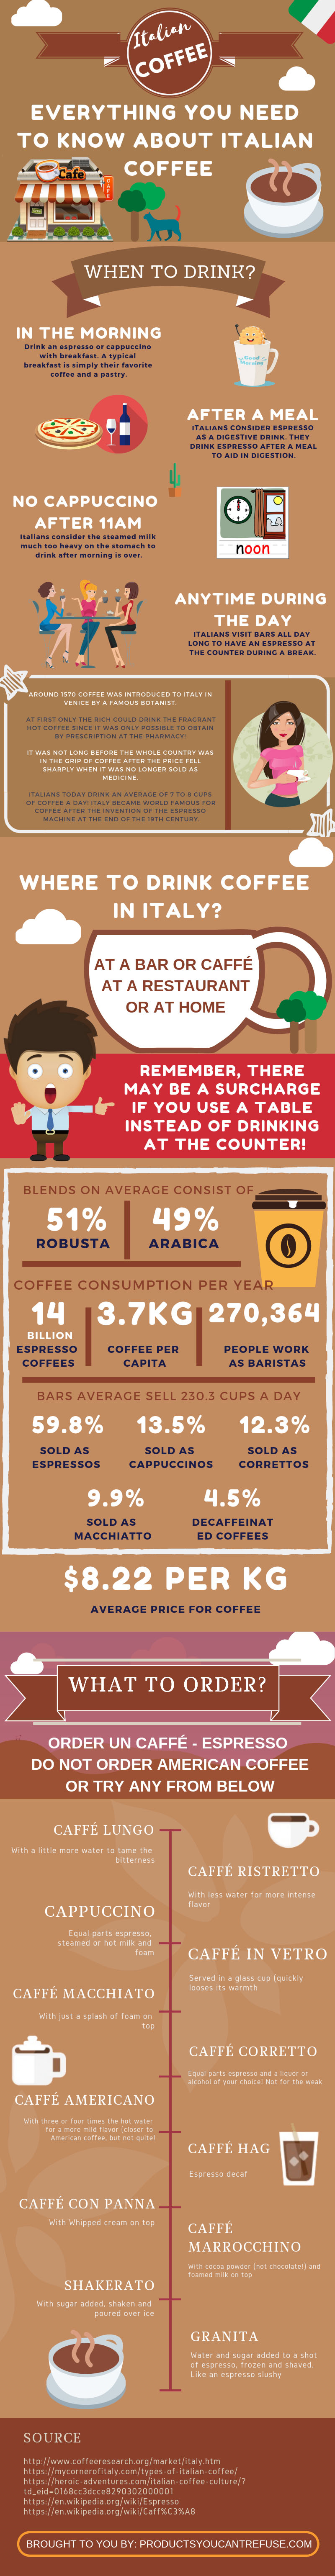 Everything about Italian coffee.